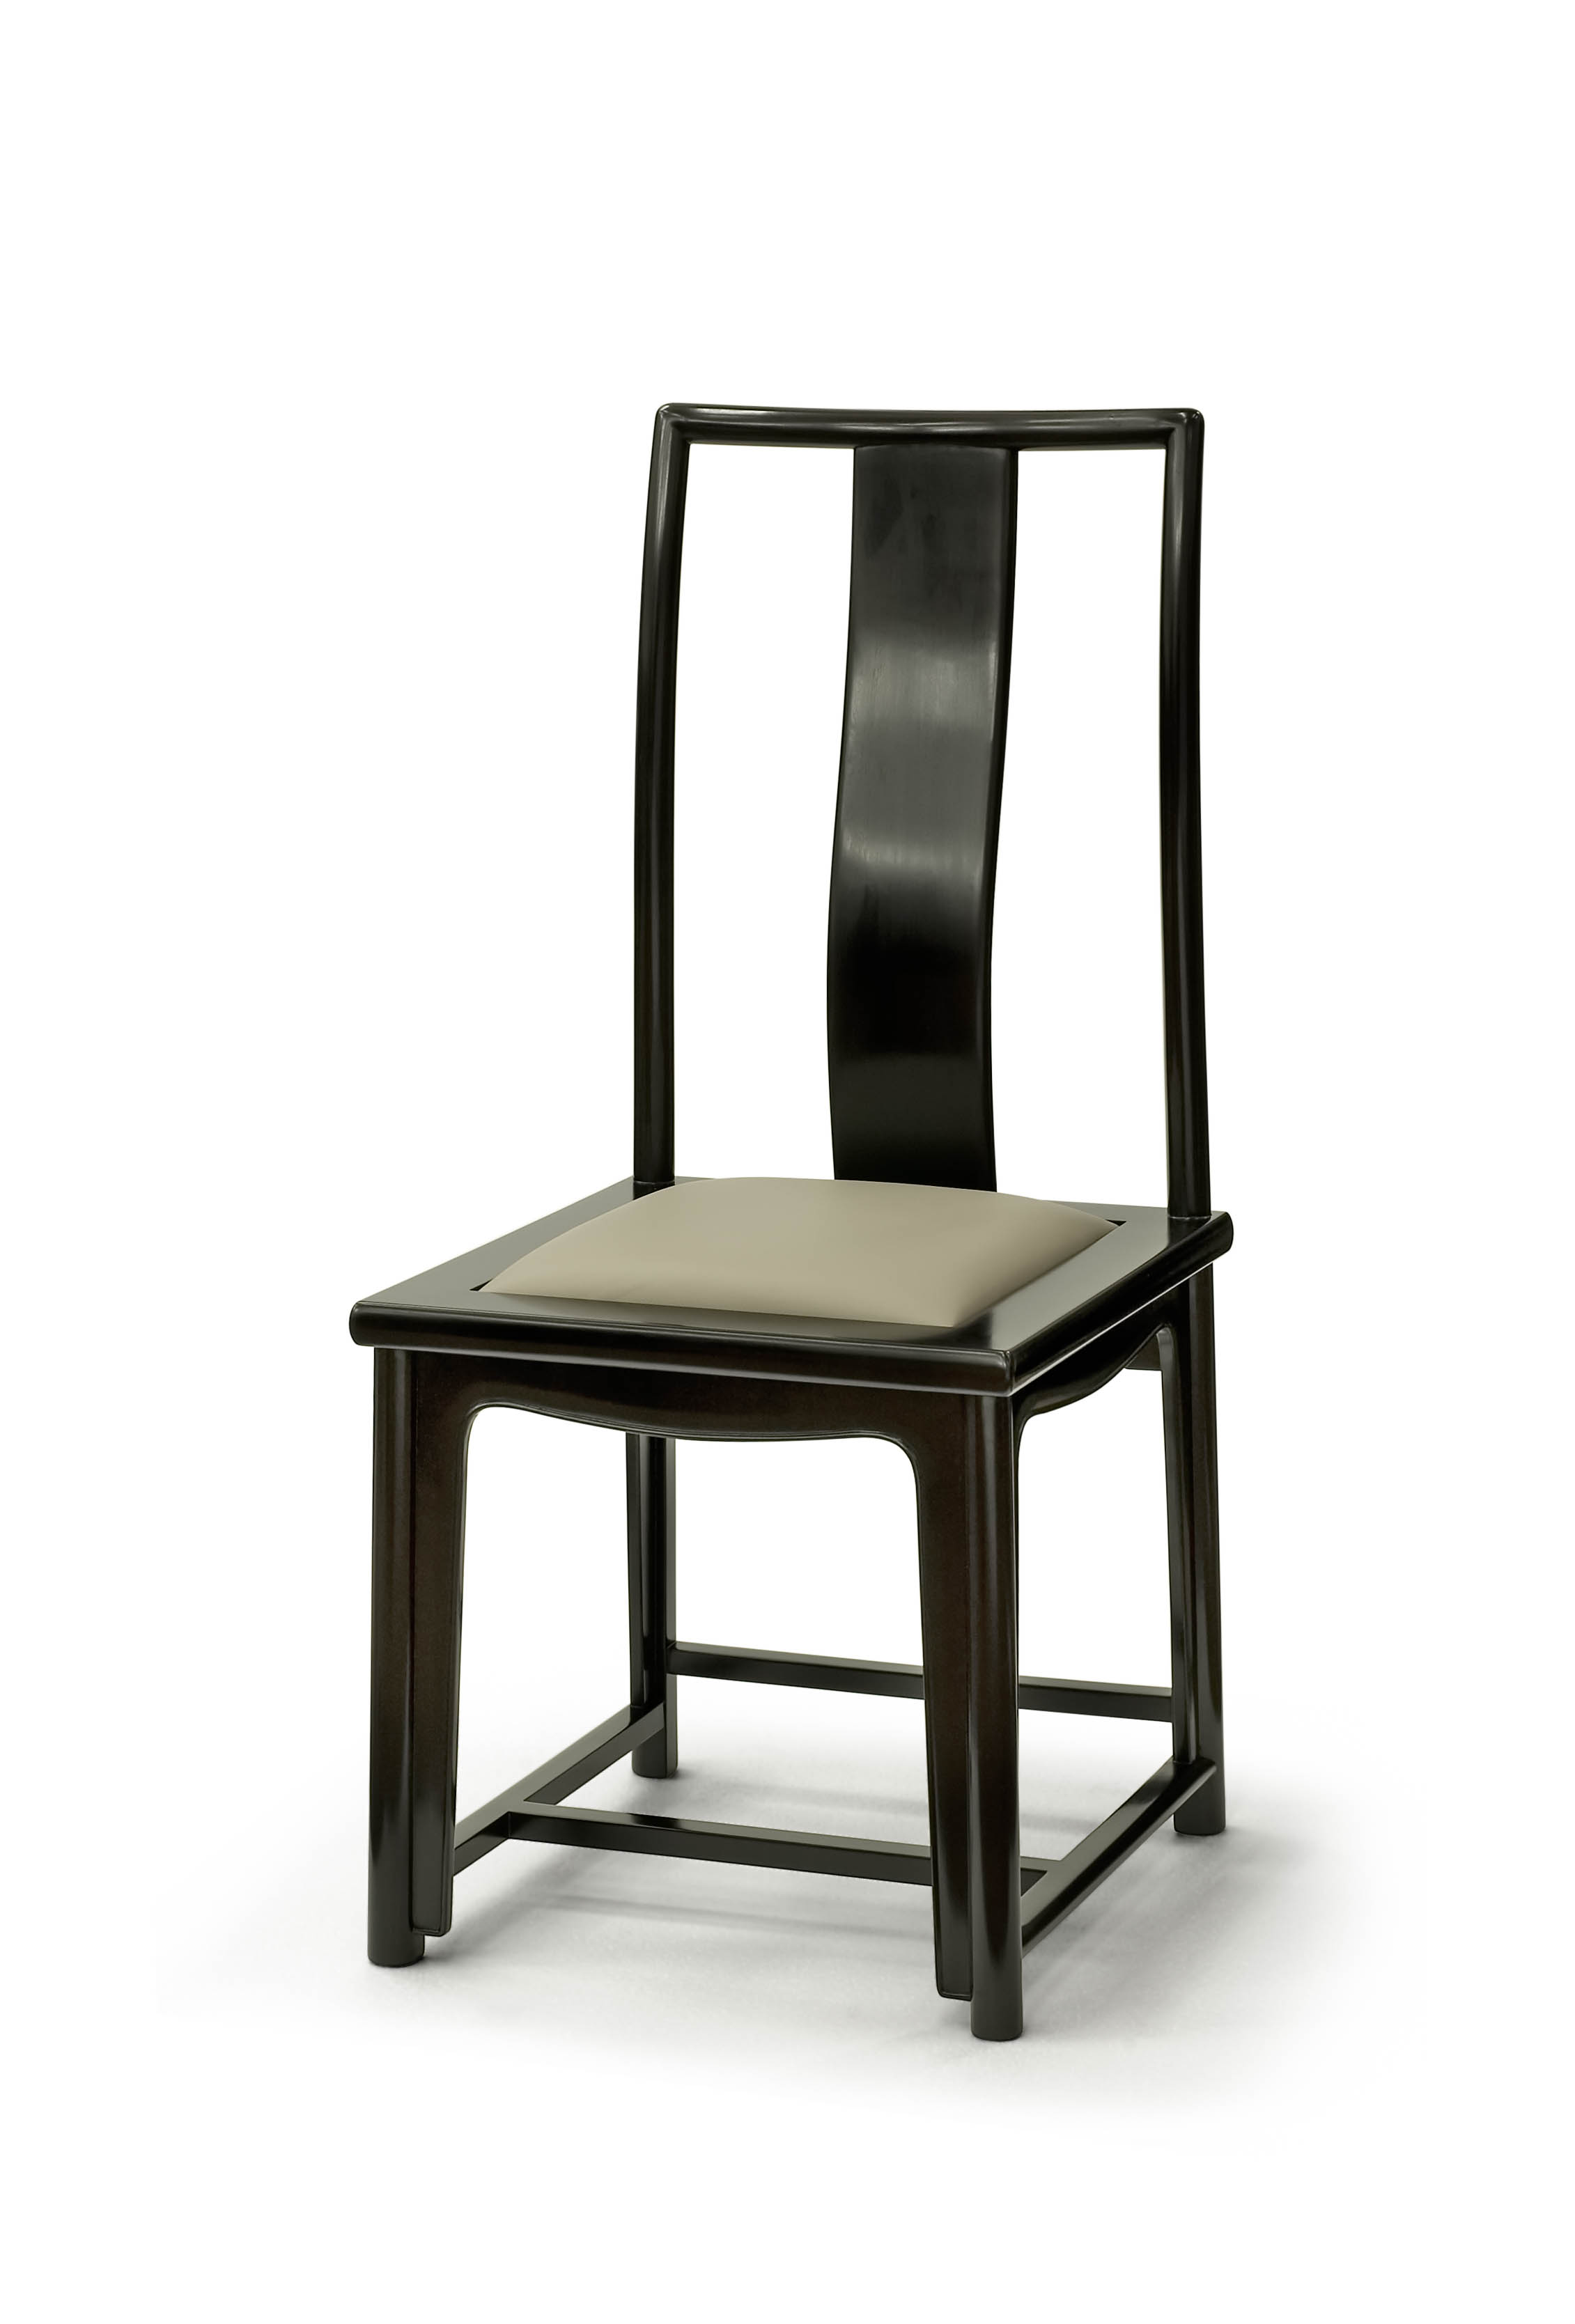 ....chinese ming style furniture : dining side chair ..中式明式家具 : 靠背椅....